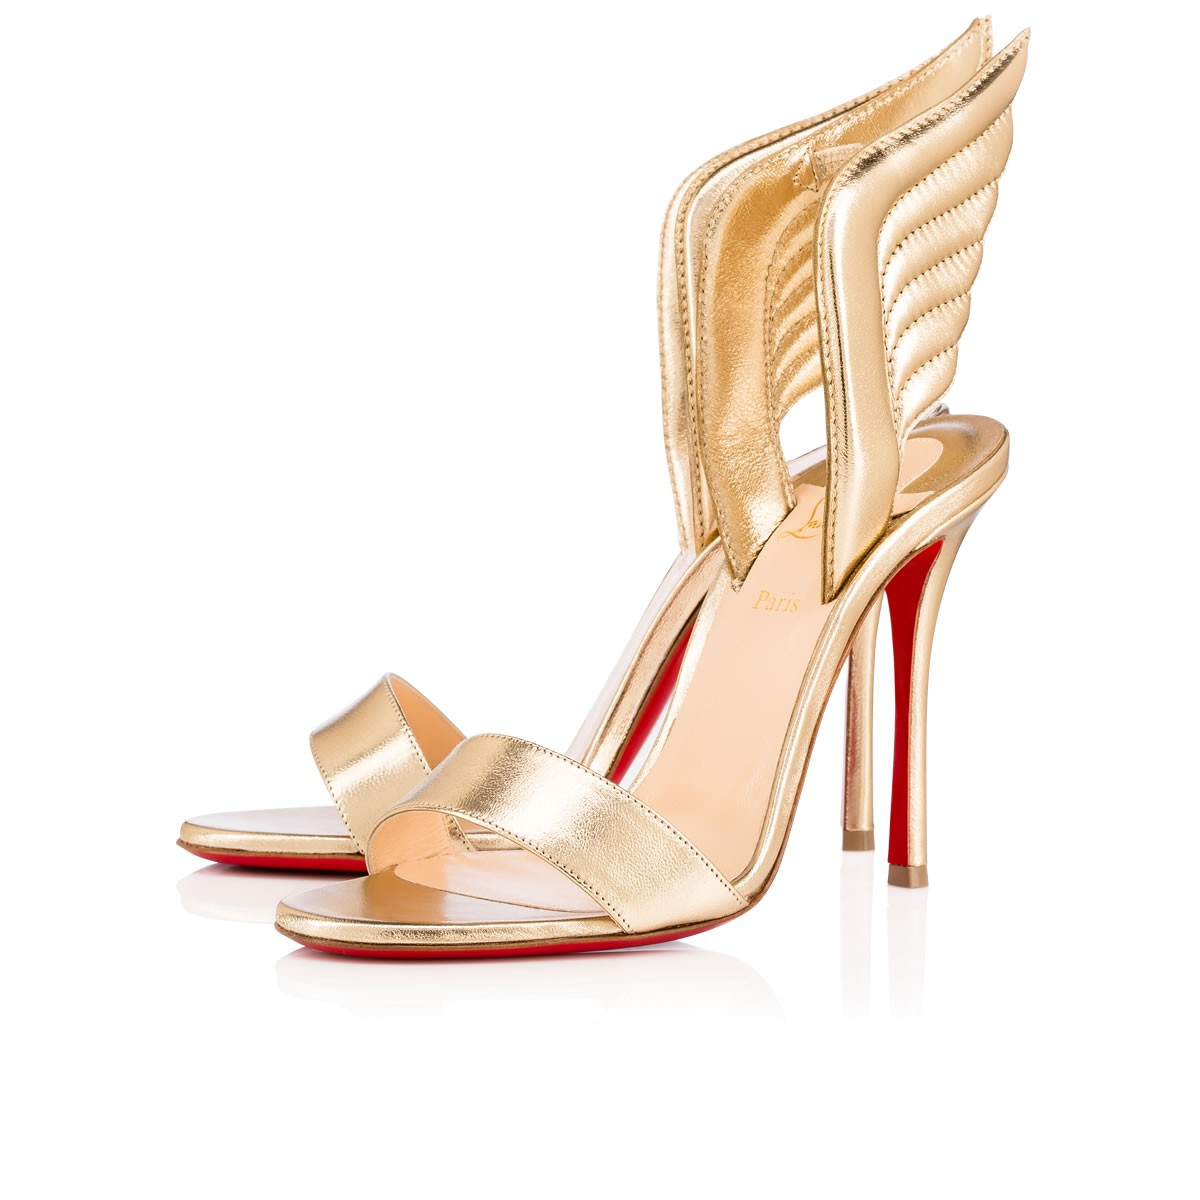 a48b147c001 Samotresse Wings Red Sole Sandal, Gold in Light Gold